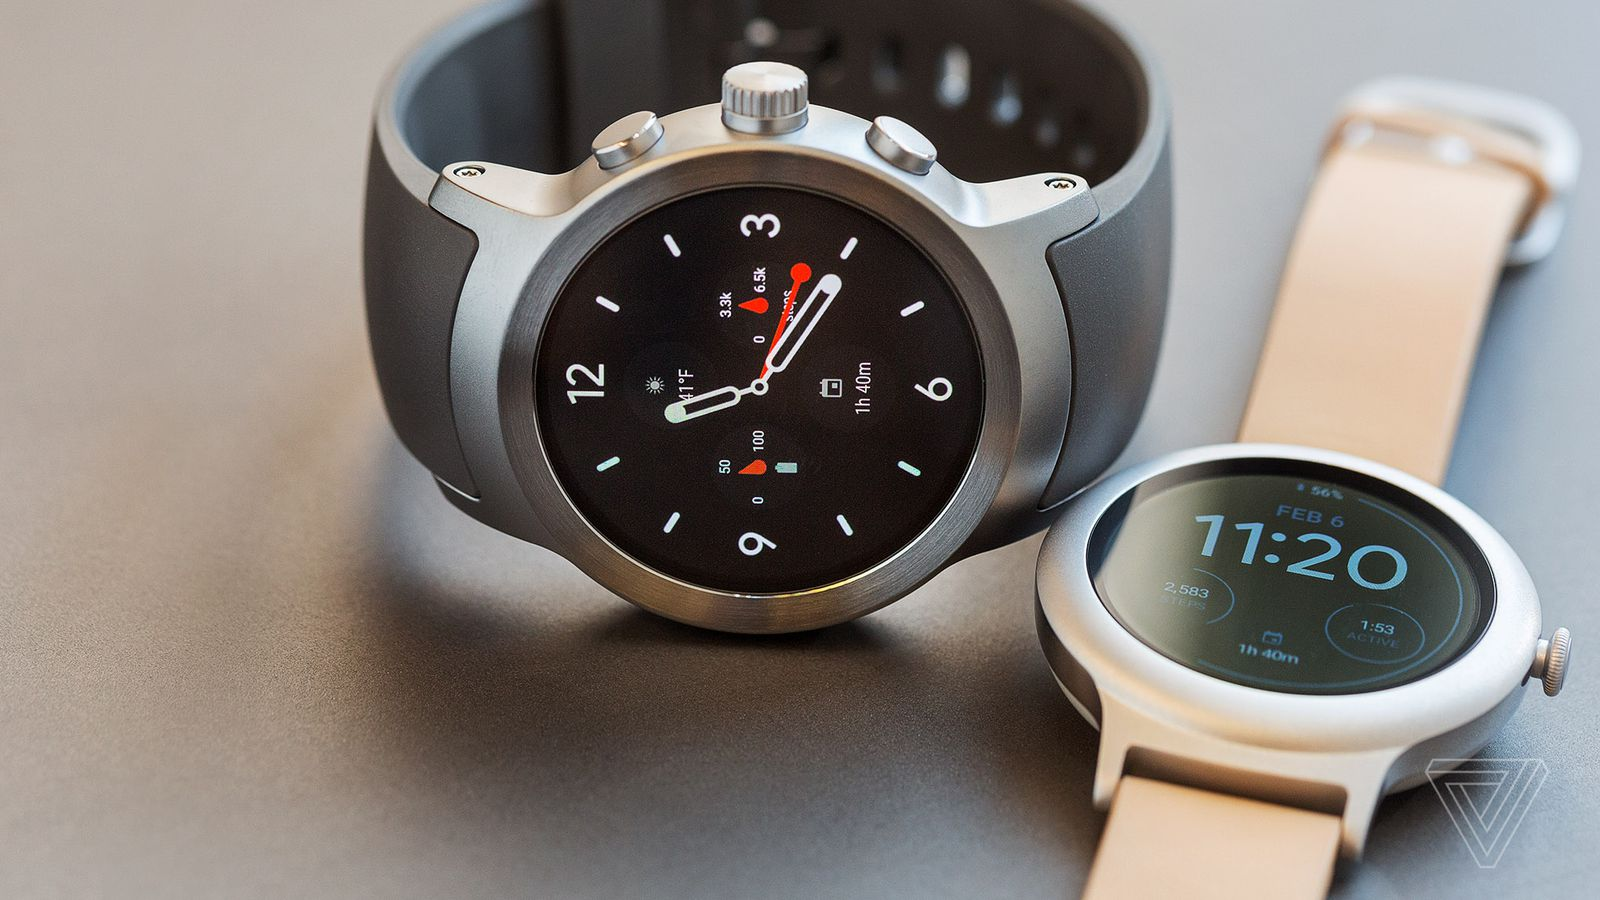 Google: the Search Giant Reinvents Wear Smart Clock